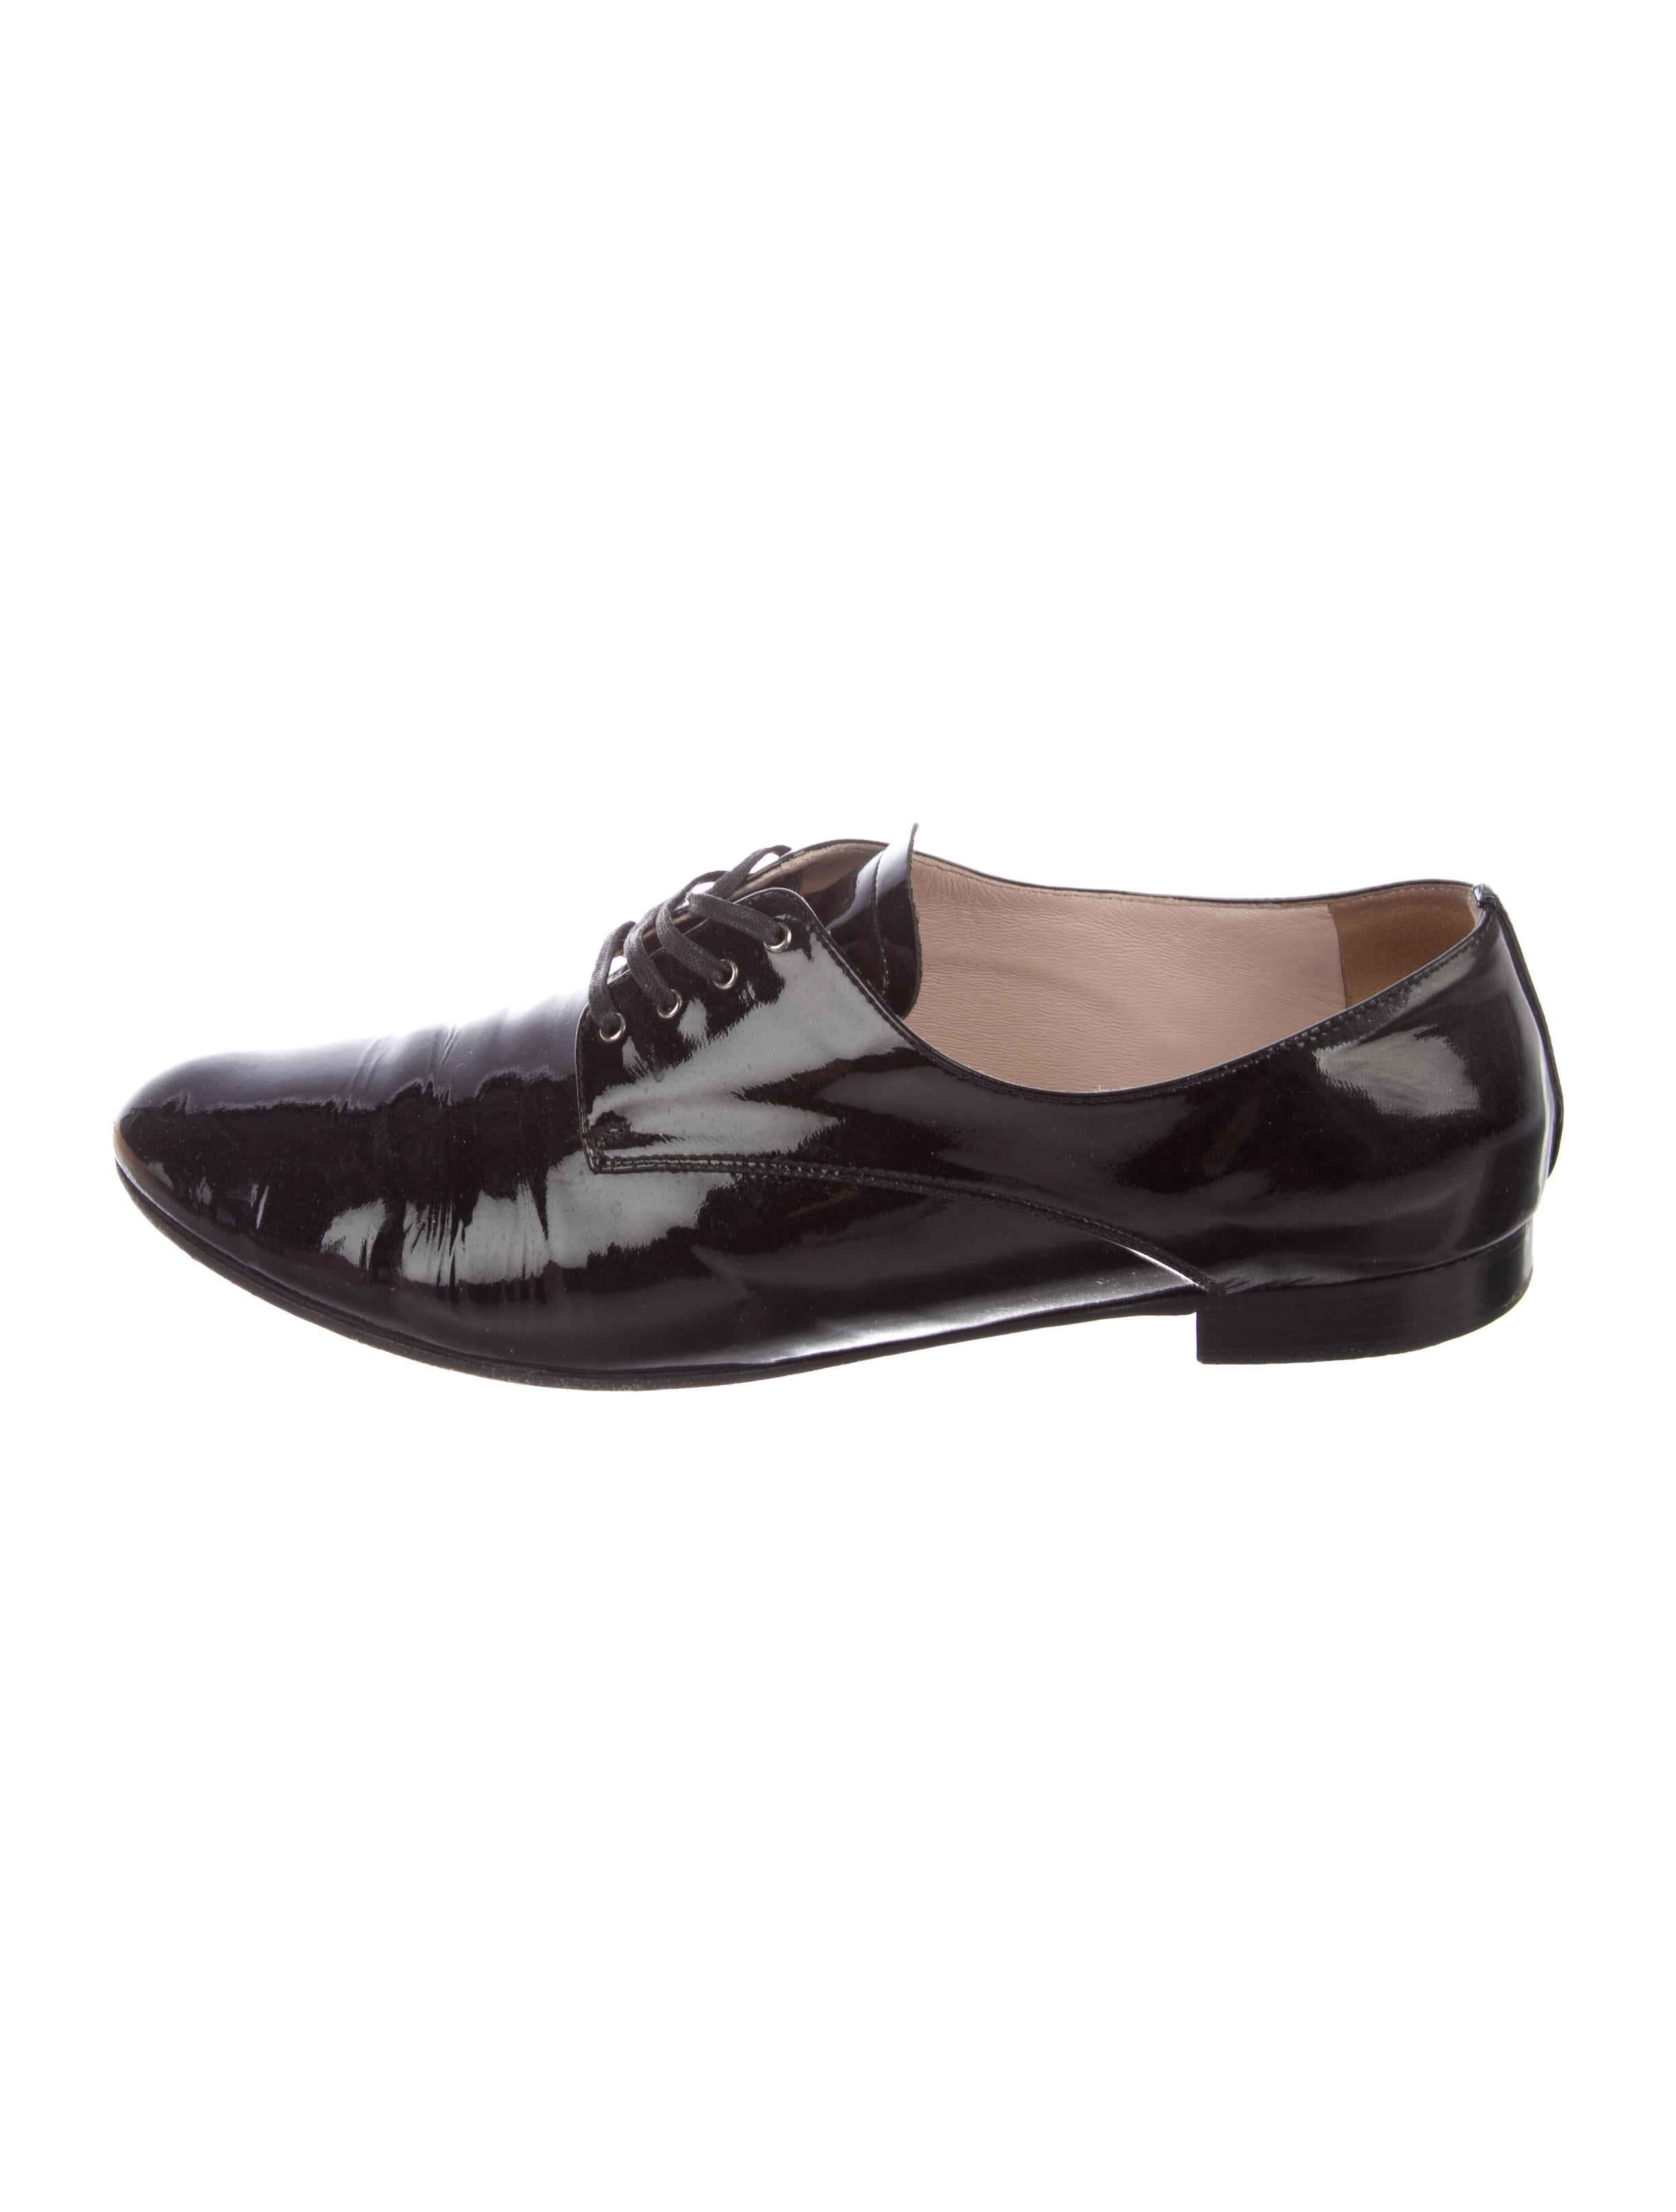 Miu Miu Patent Leather Round-Toe Oxfords - Shoes - MIU60790  4e83af80606a